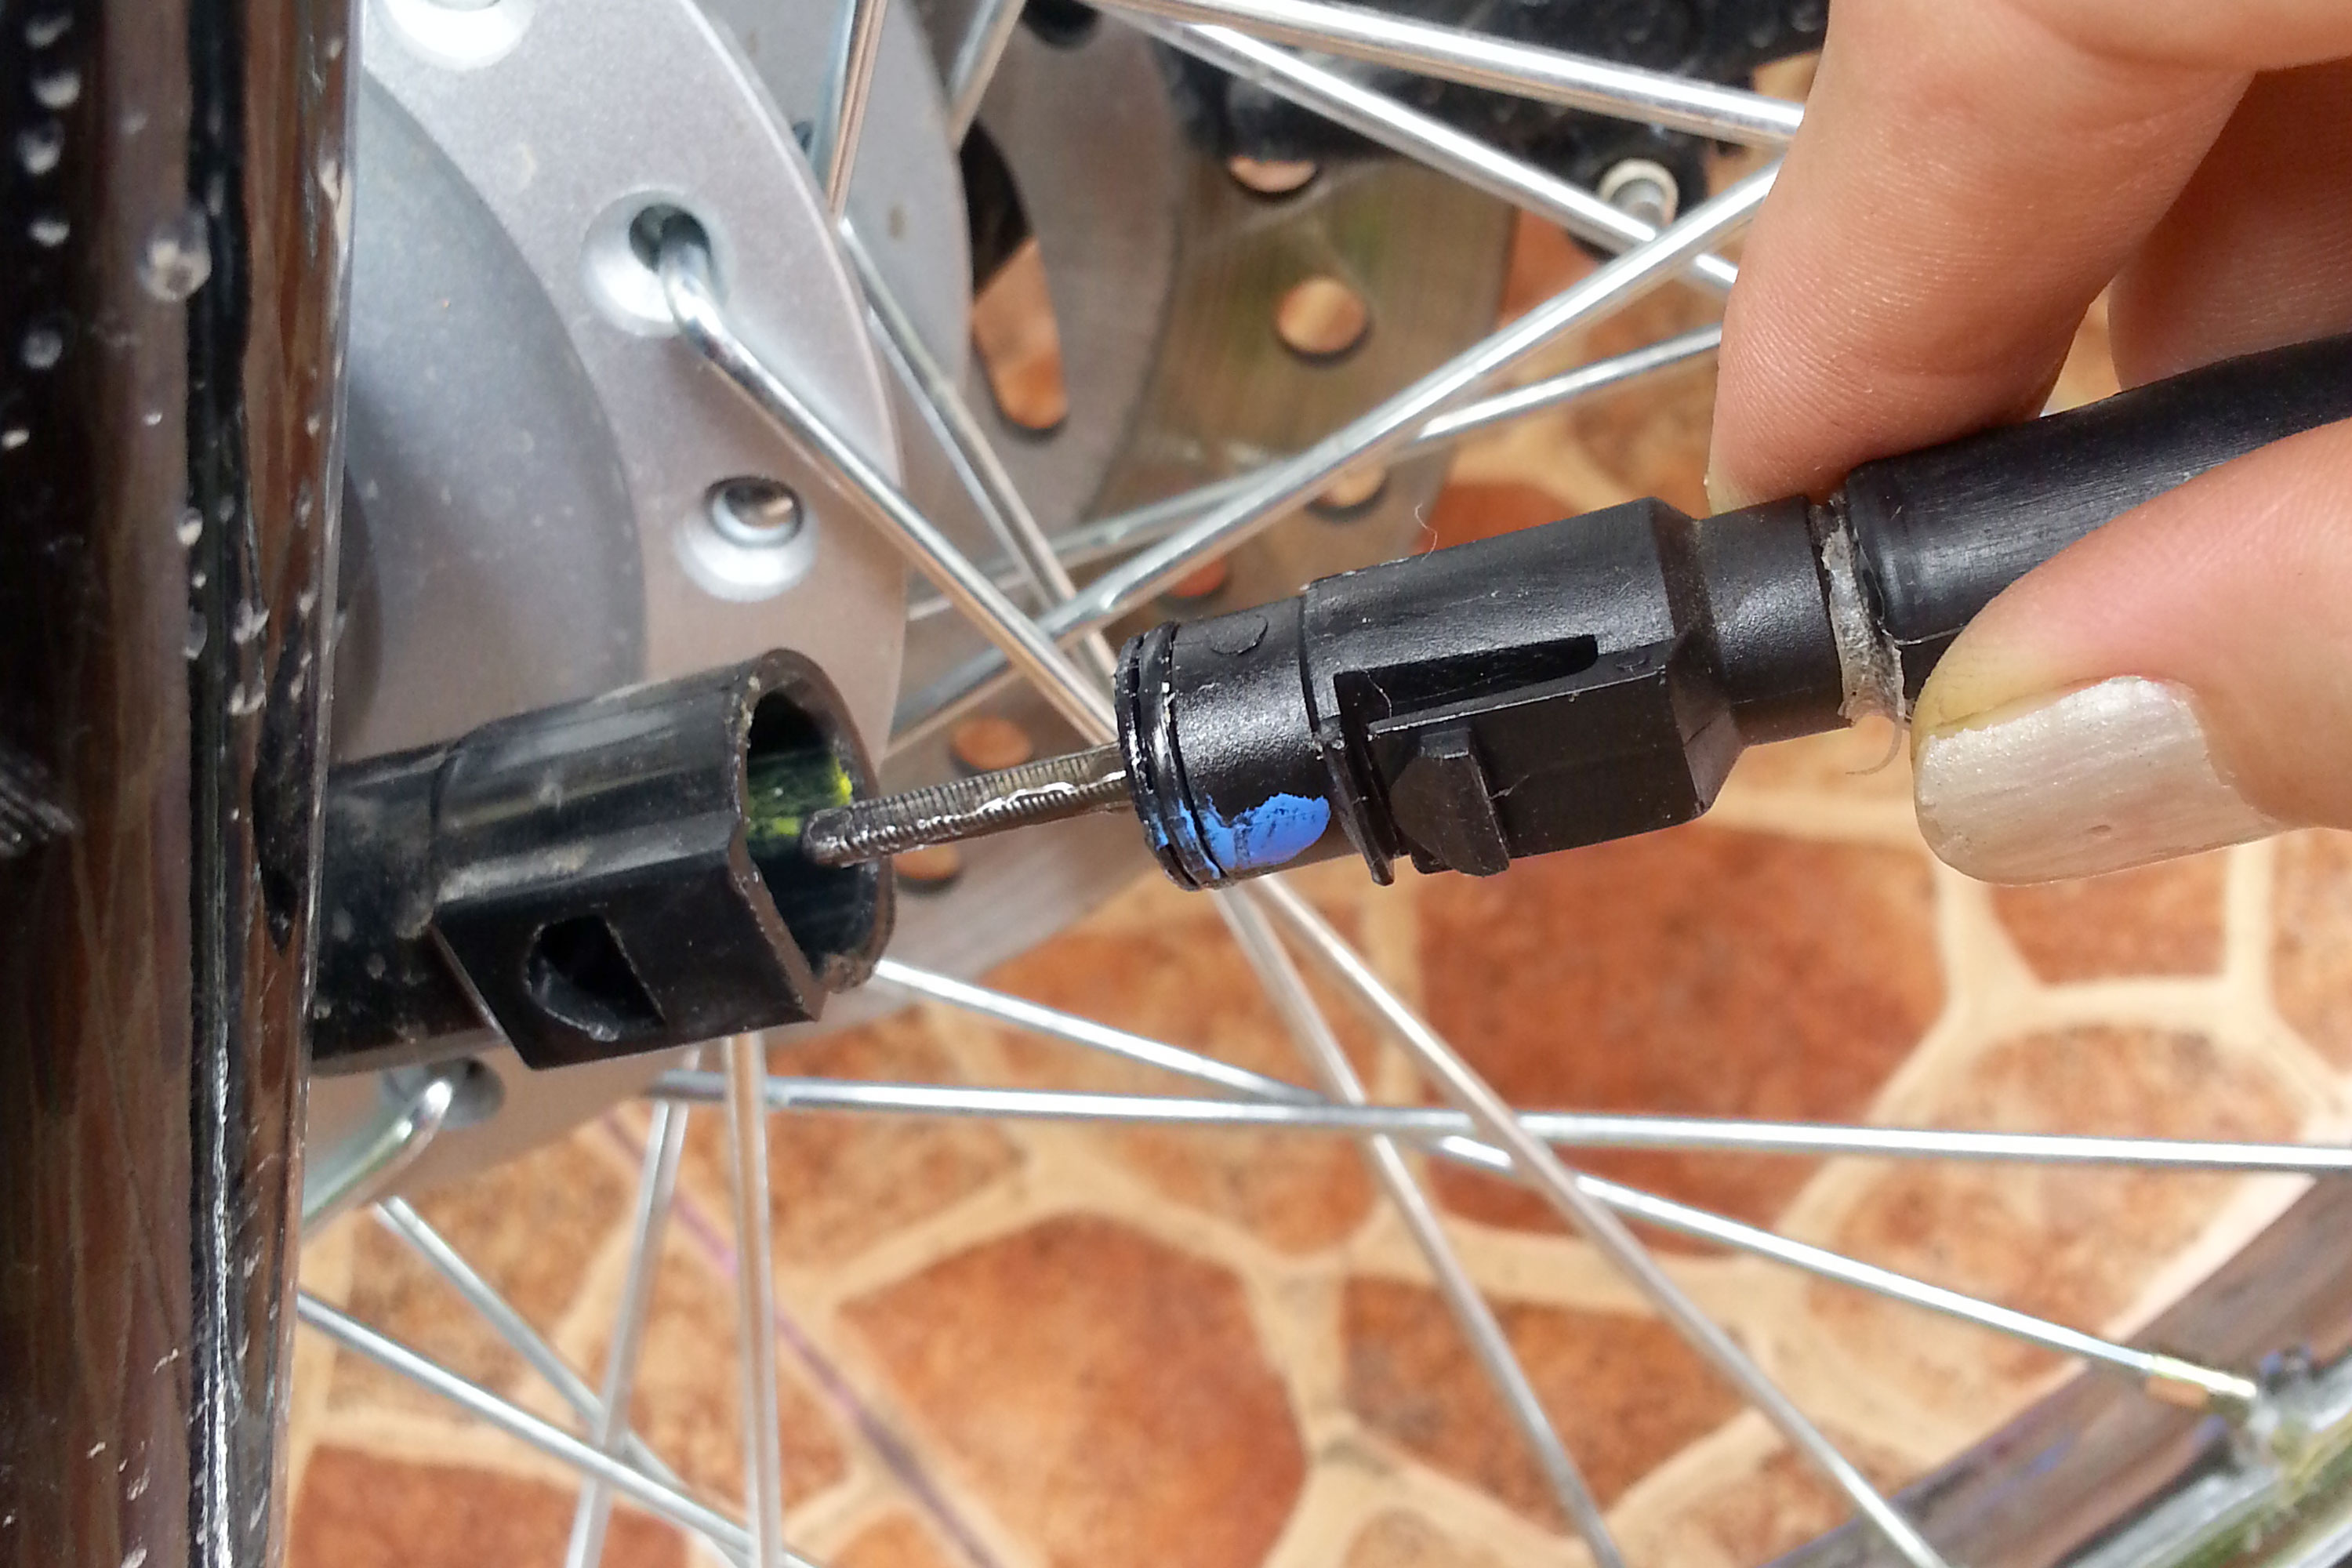 How To Repair A Motorcycles Speedometer Gone Outdoors Your Motorcycle Fuse Box Replacement Locate The Lower End Of Cable Where It Attaches At Front Wheel Hub Use Small Metric Wrench Loosen Fitting That Connects